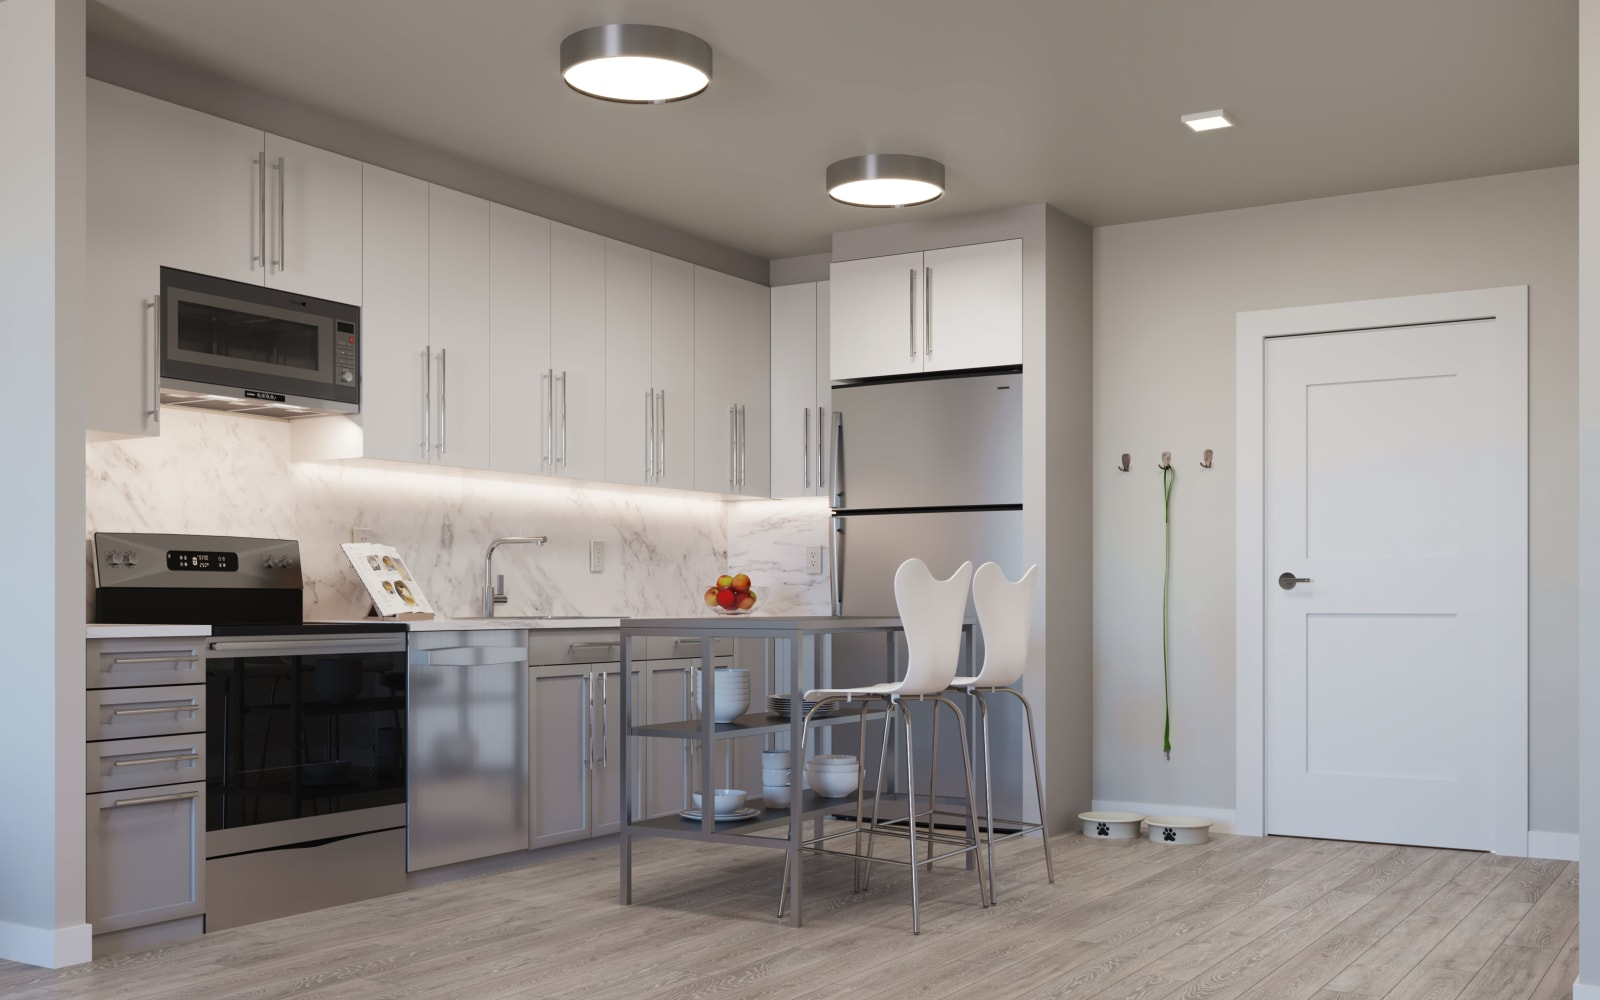 North Square Apartments at The Mill District offers a kitchen in Amherst, Massachusetts